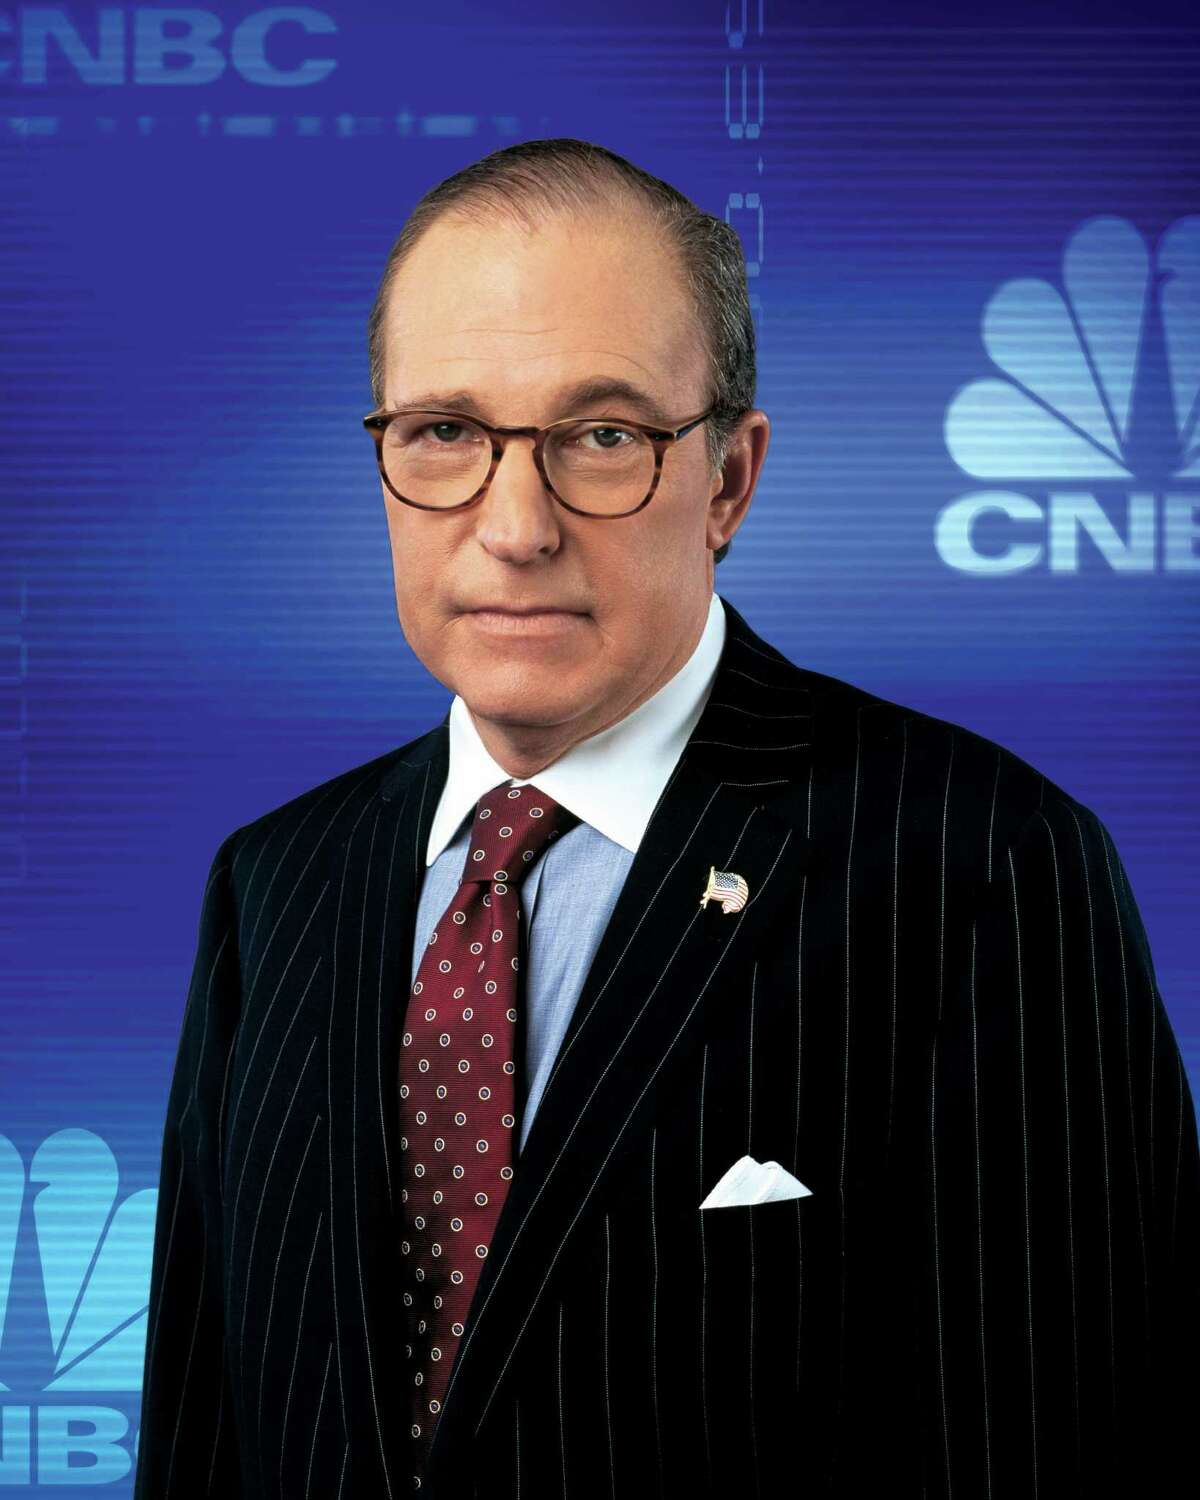 Longtime economics and political commentator Larry Kudlow spoke at the Trinity University Policy Maker Breakfast series event Tuesday.